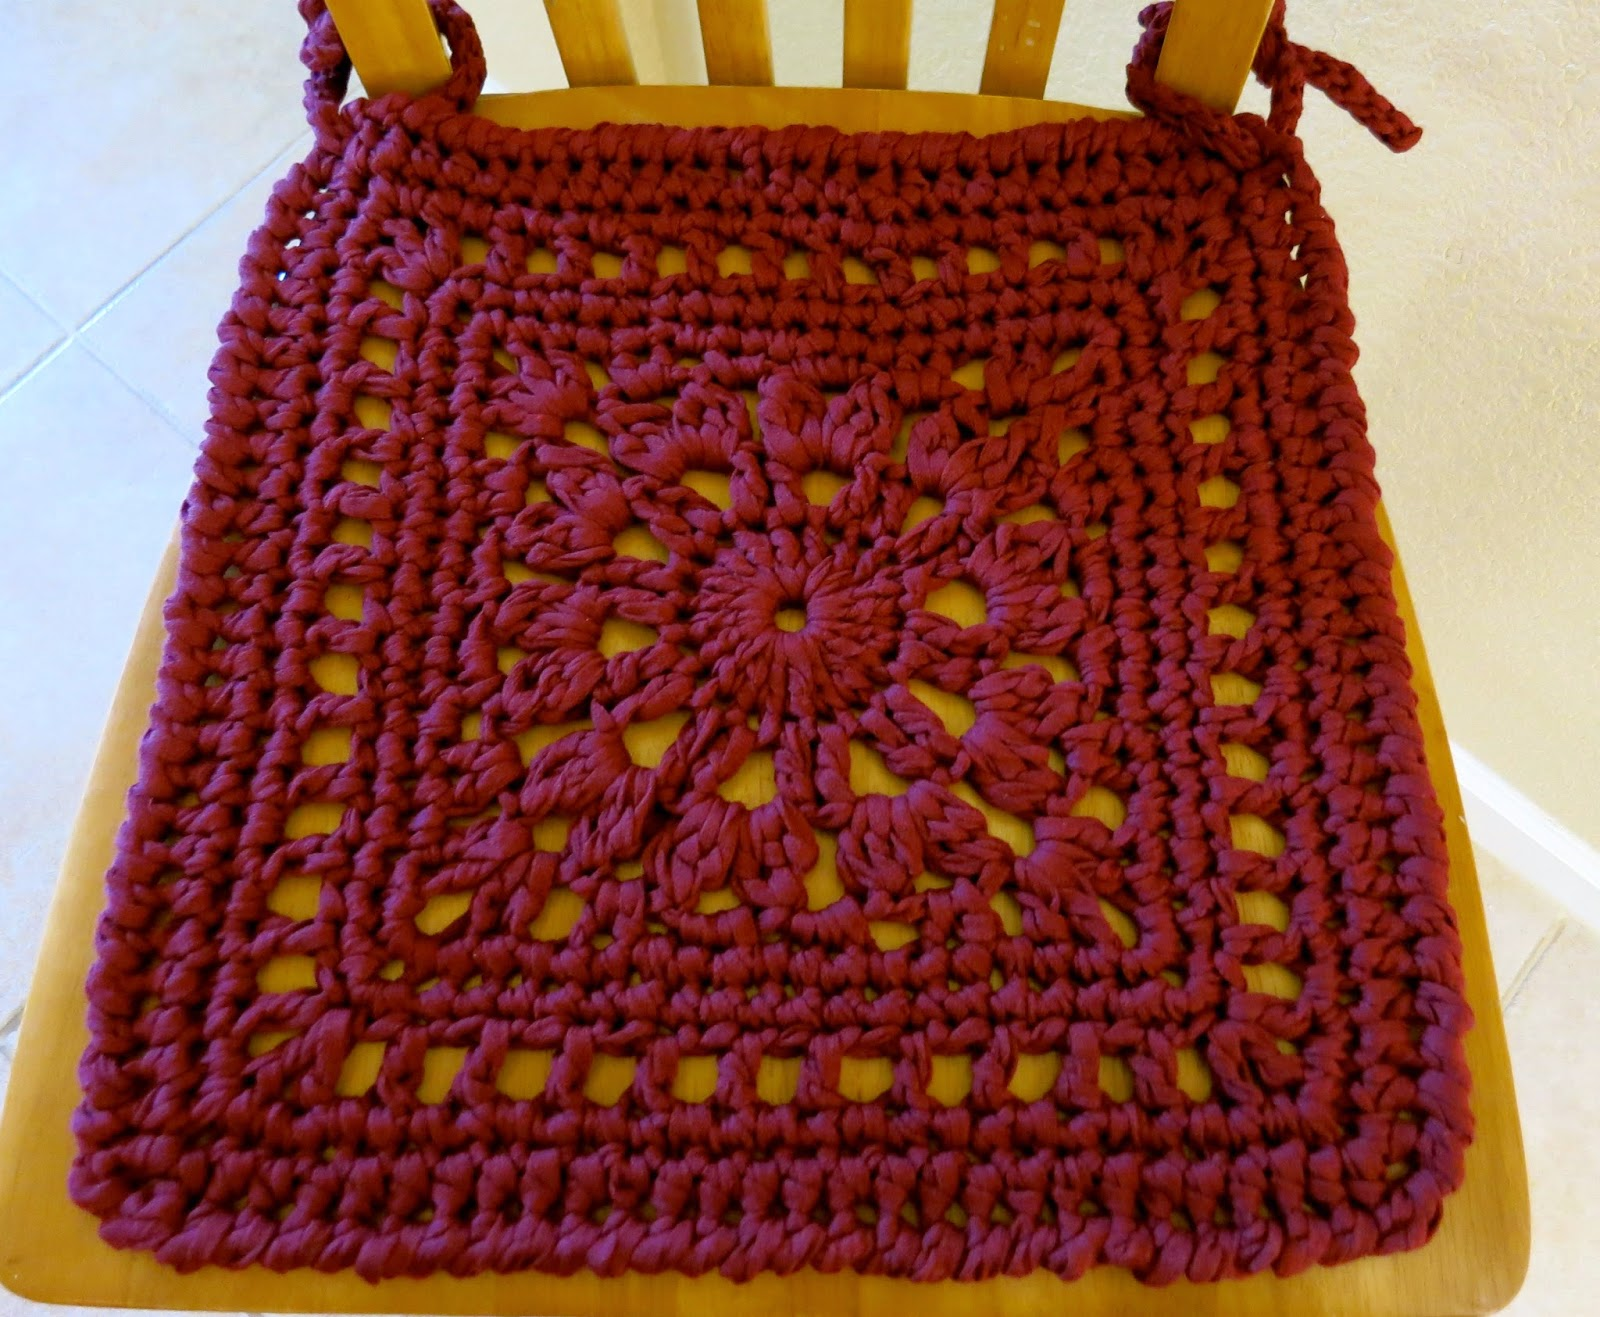 Da\'s Crochet Connection: Is It A Chair Rug Or A Chair Pad?